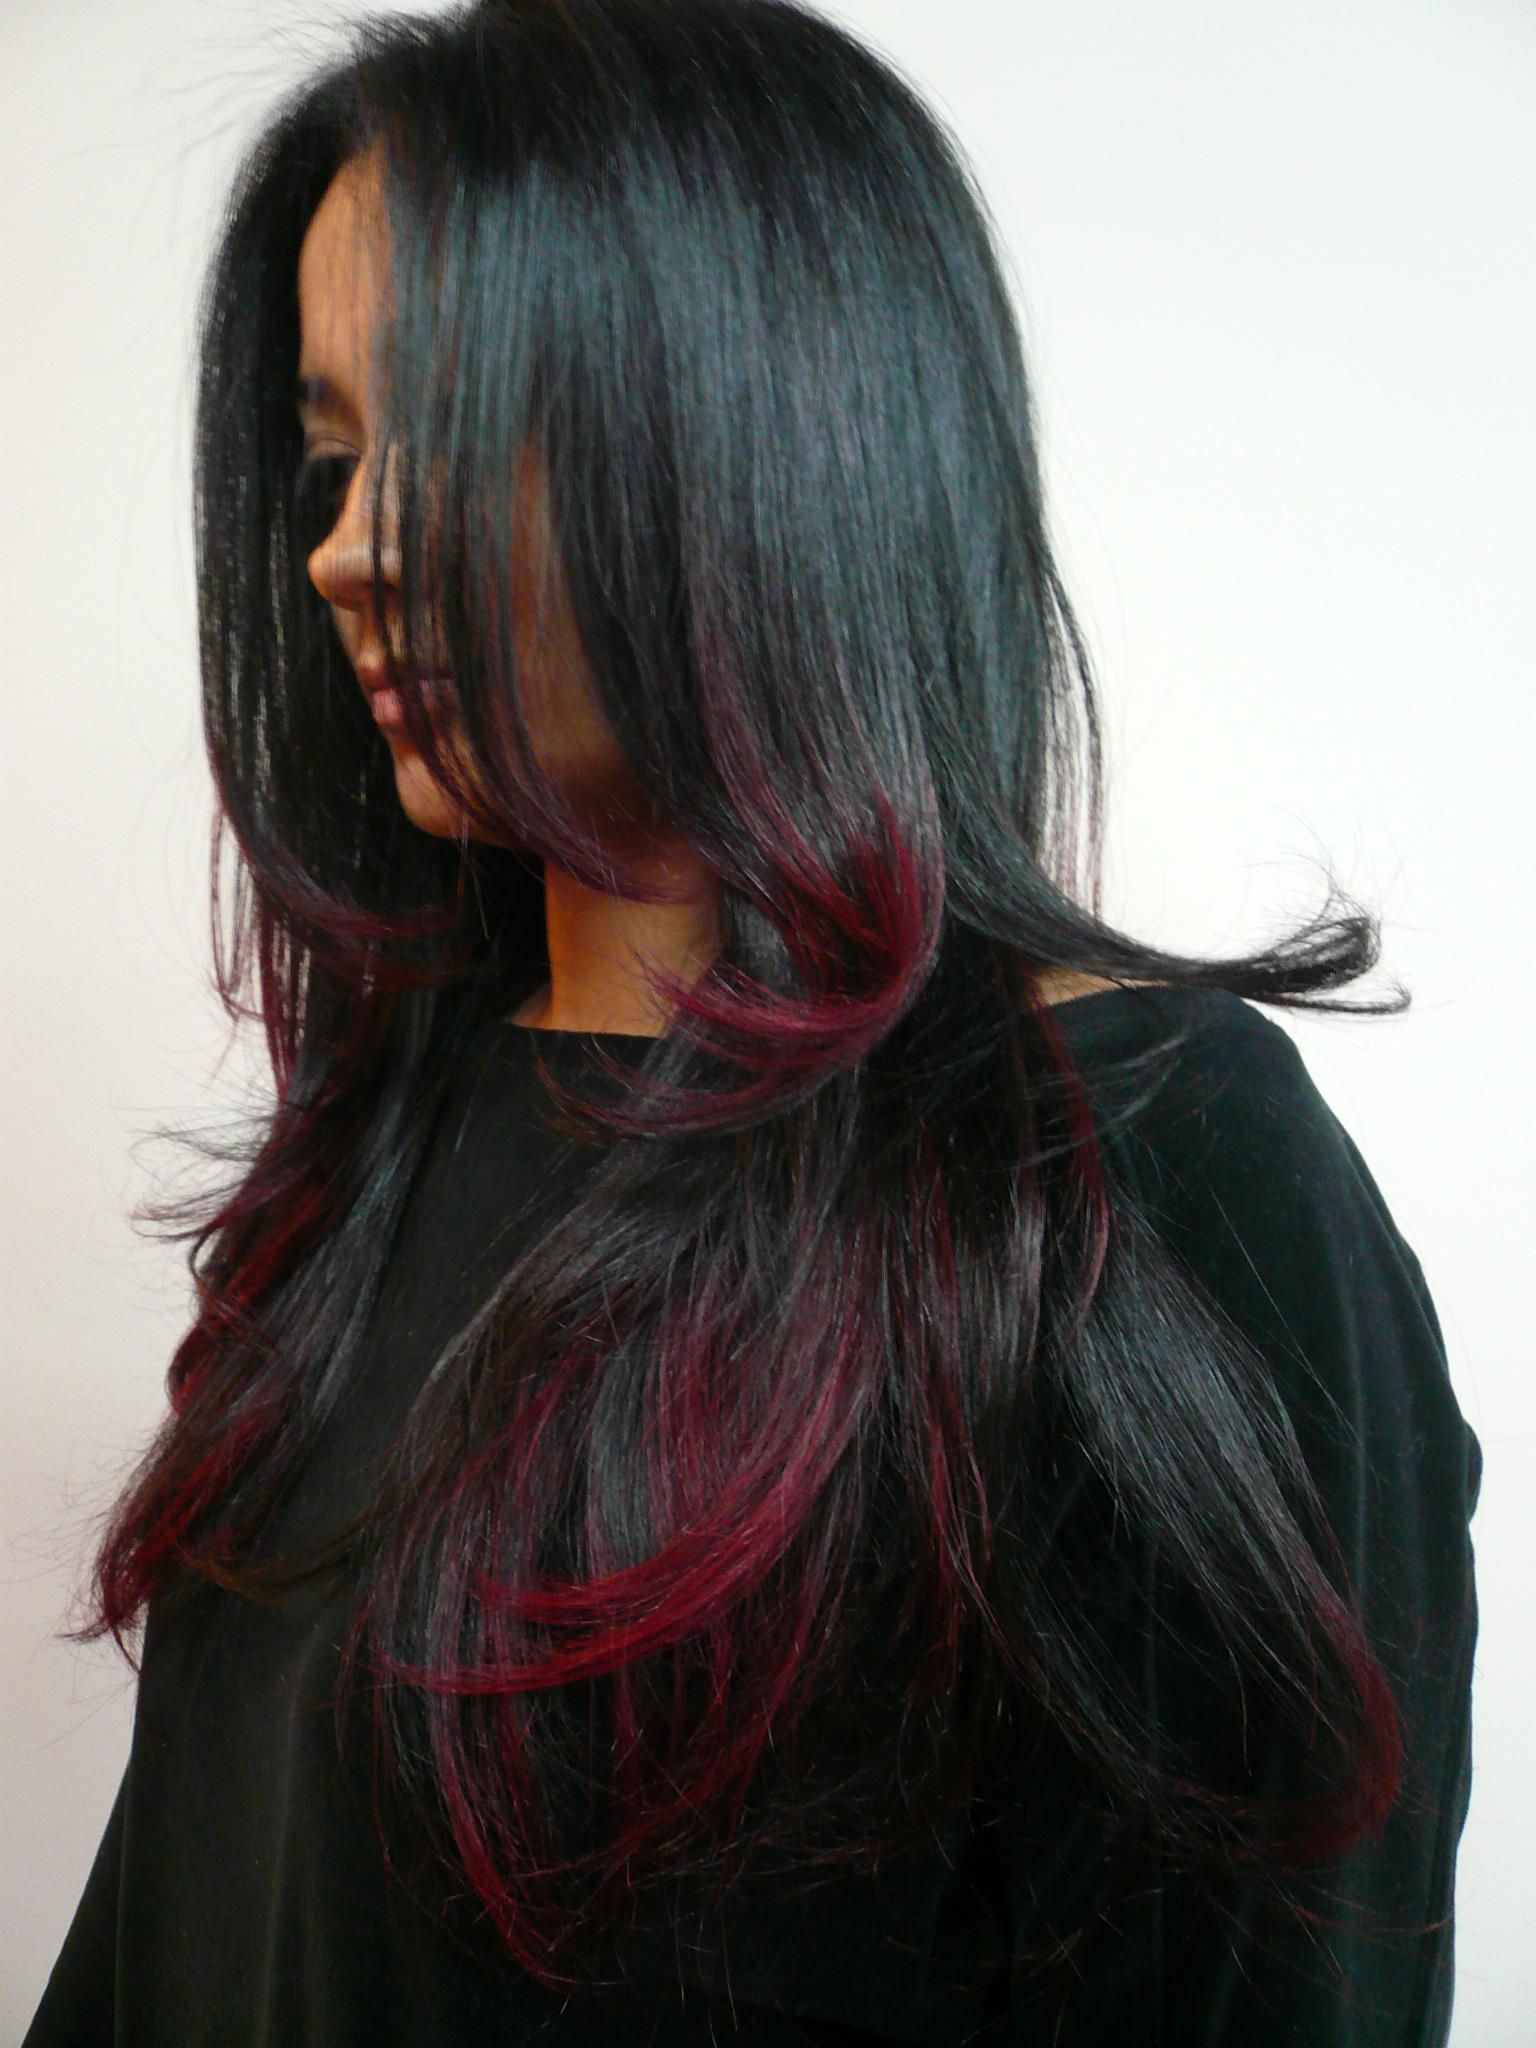 Communication on this topic: Black Ombre Hairstyles, black-ombre-hairstyles/